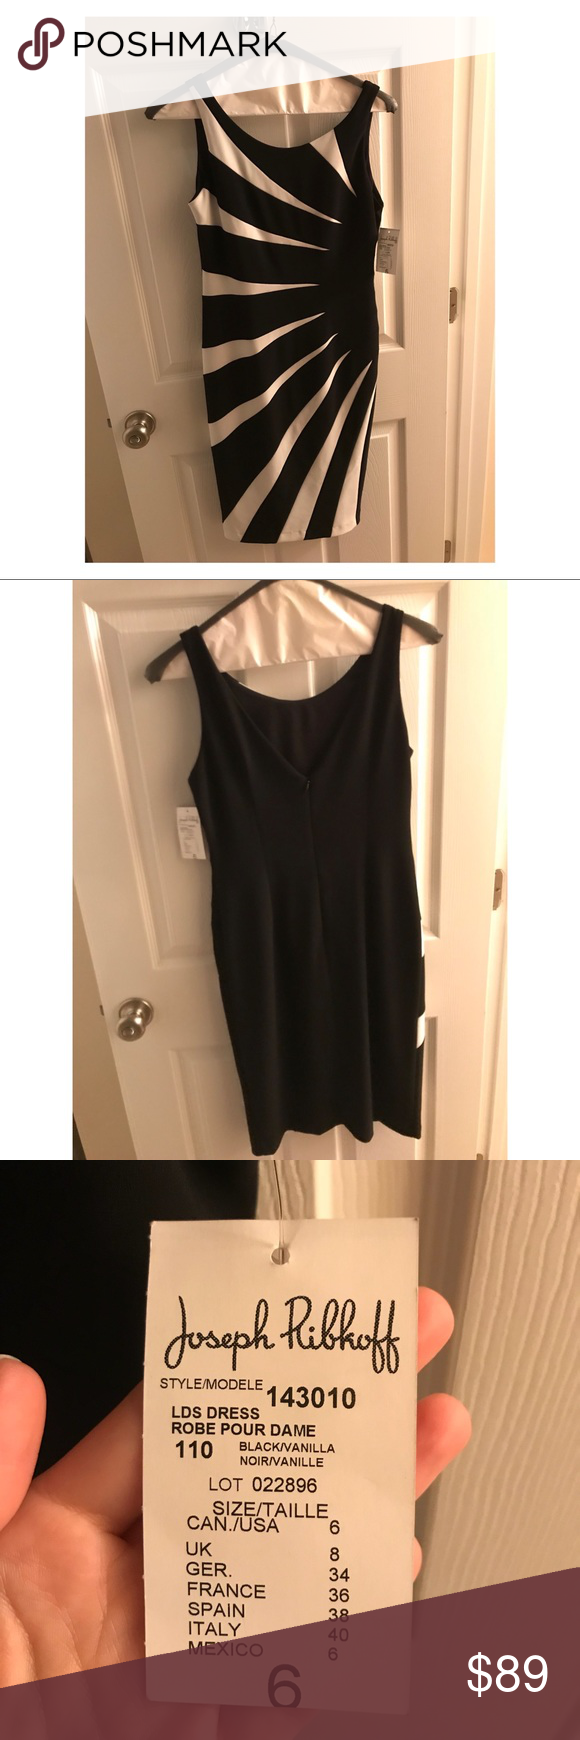 Joseph Ribkoff dress NWT | Pinterest | Customer support and Delivery